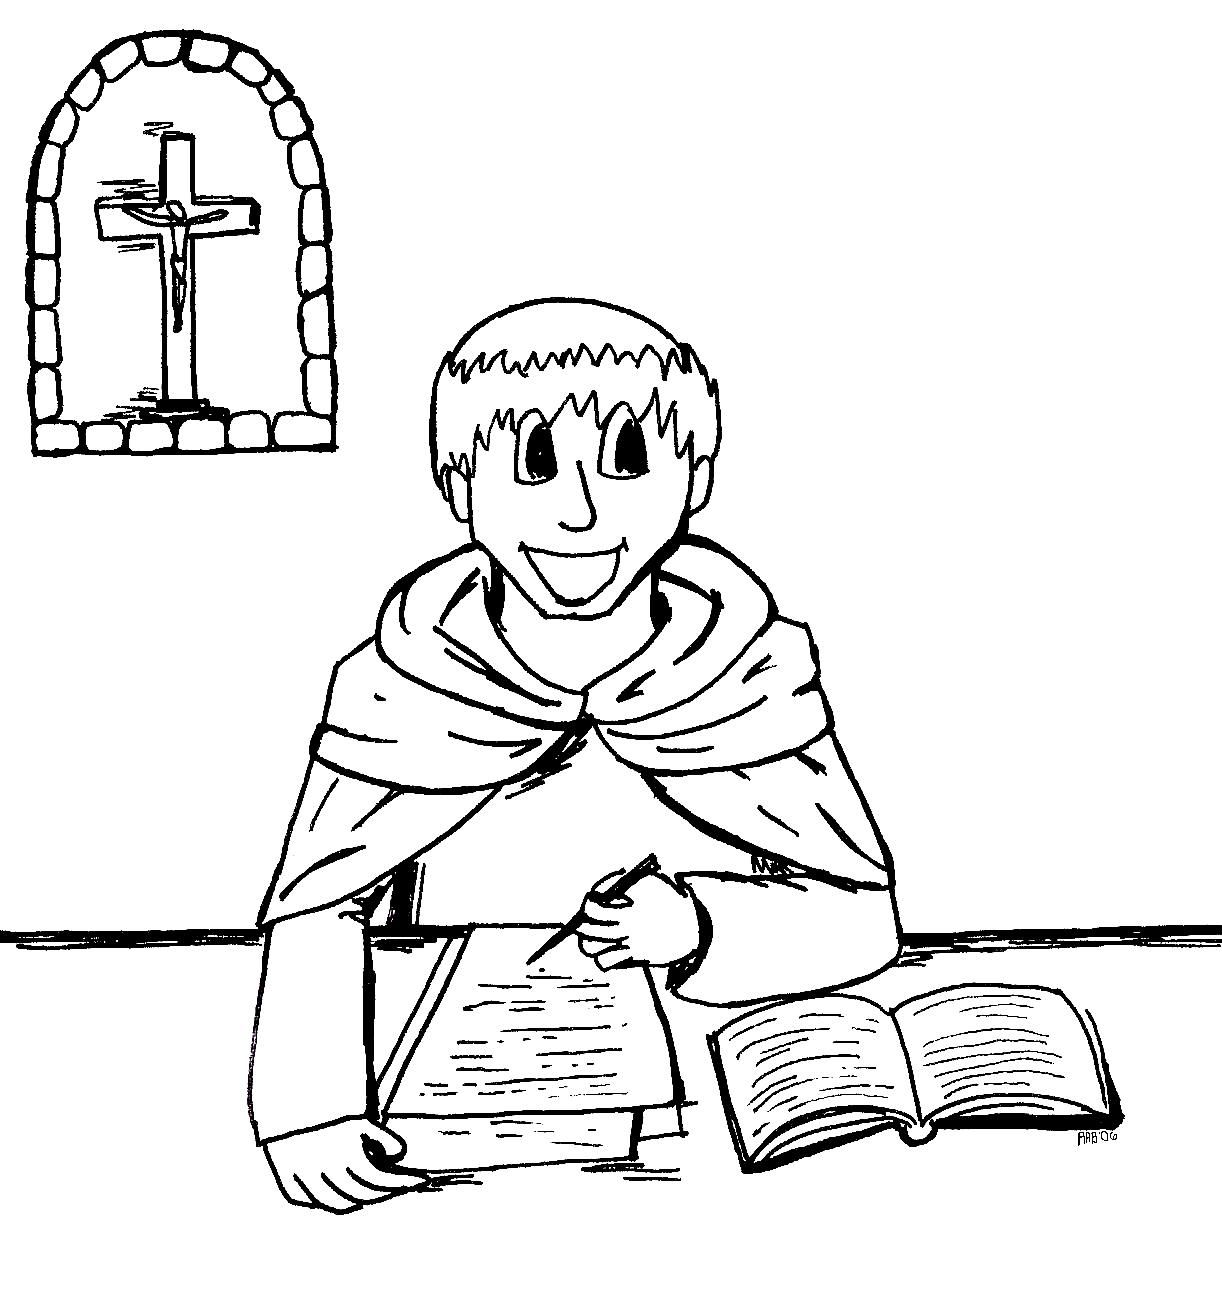 St Thomas Aquinas Coloring Pages by Mark | School miscellaneous ...